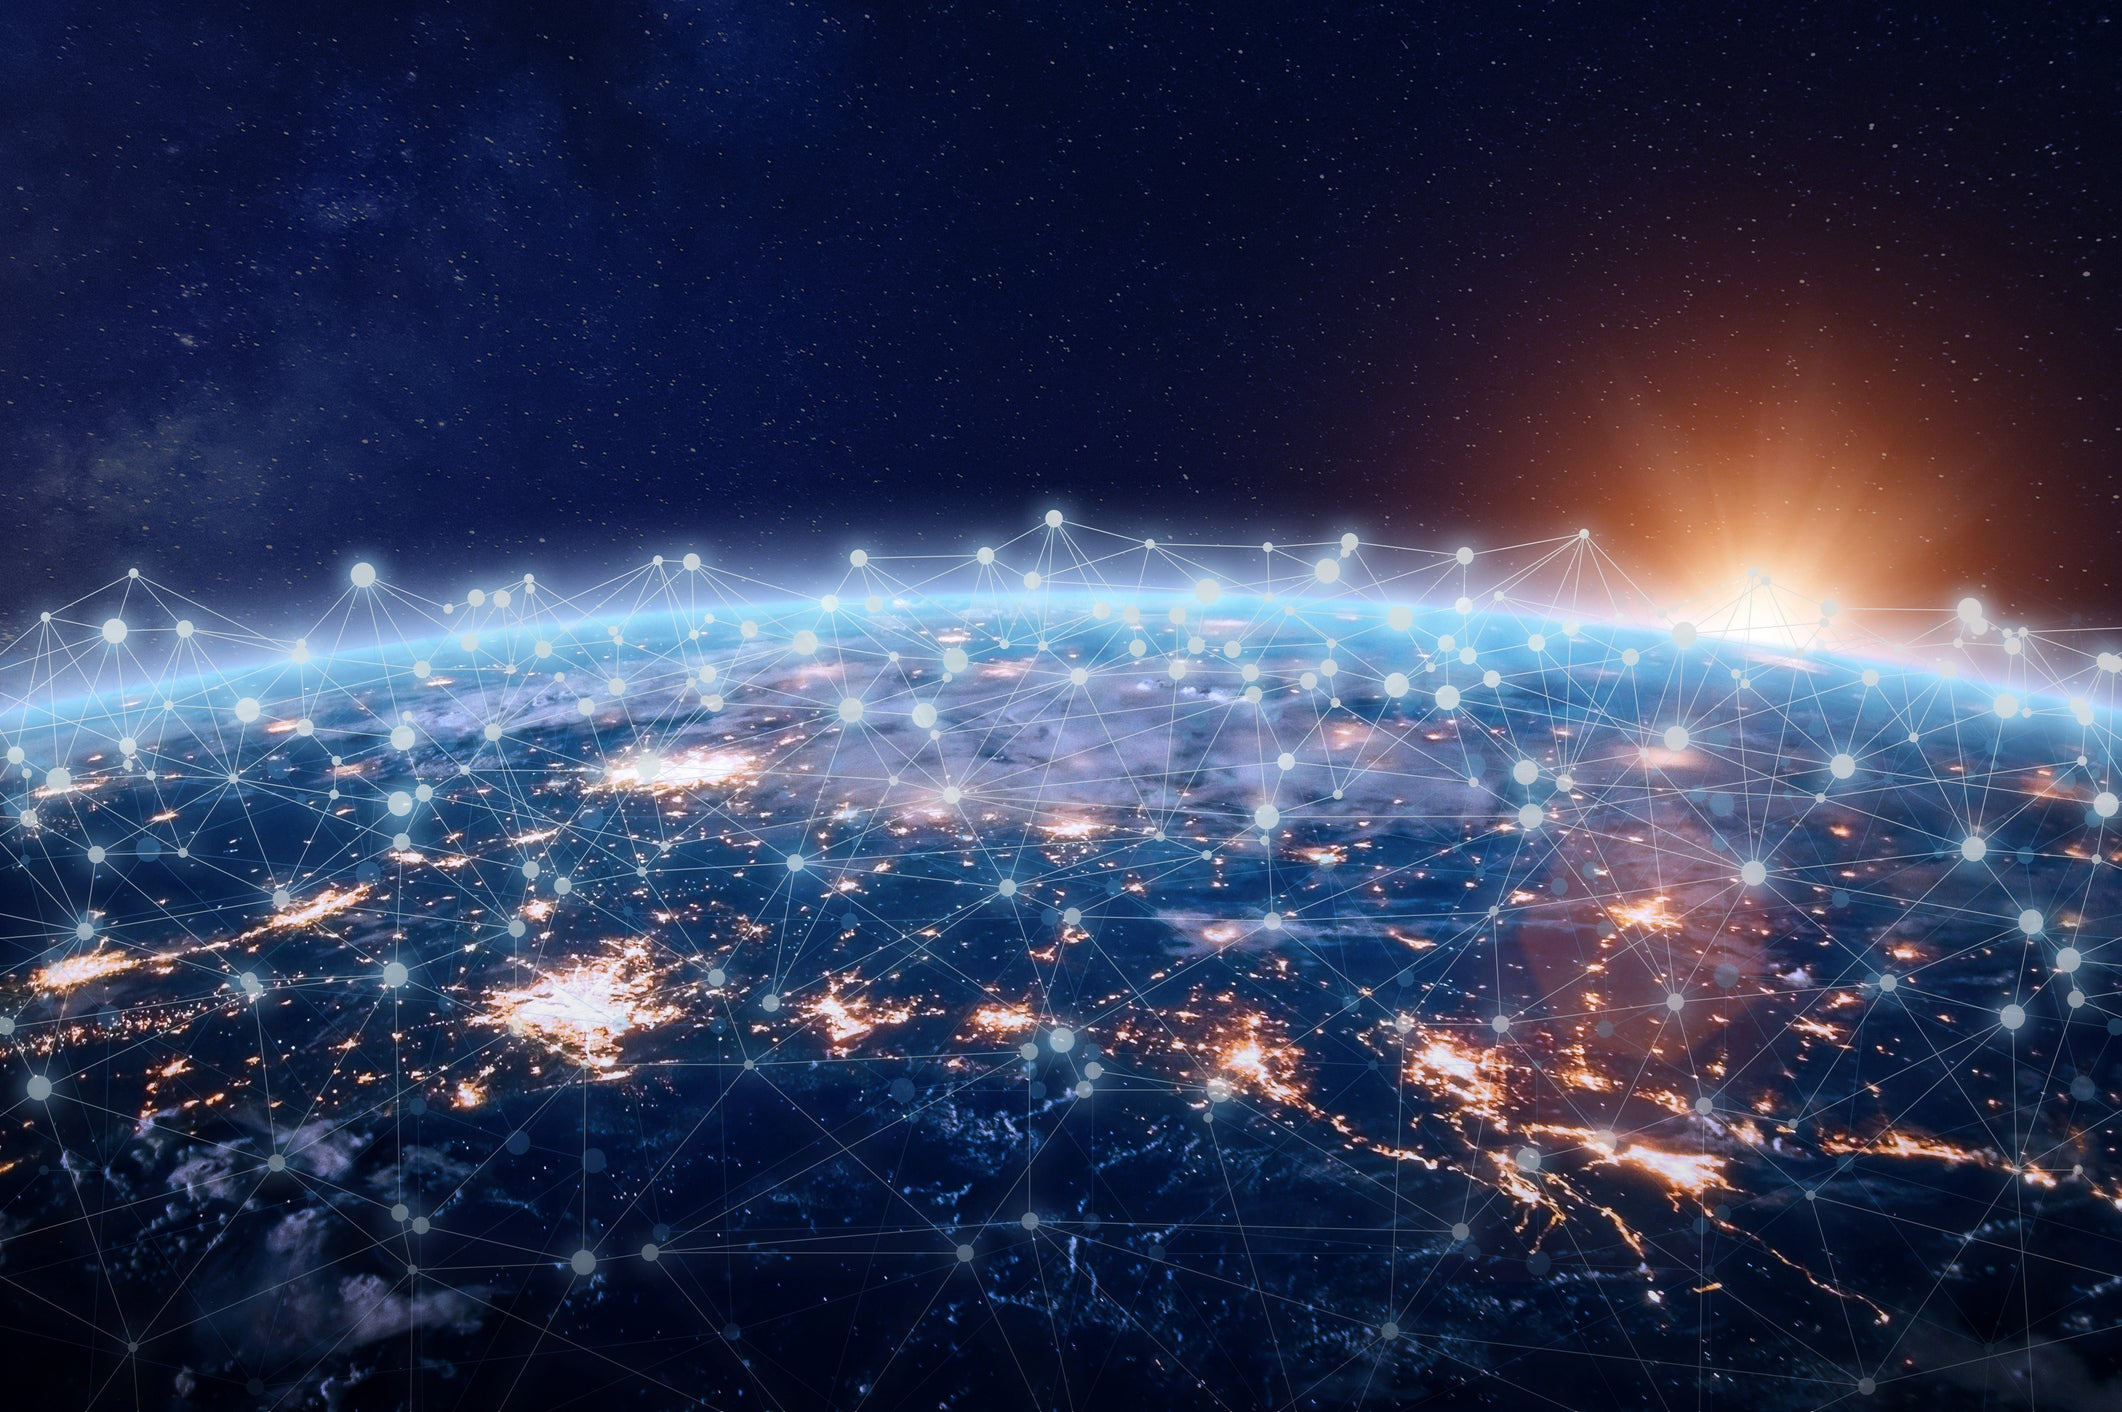 View of Earth from above with many wirelessly connected points of light